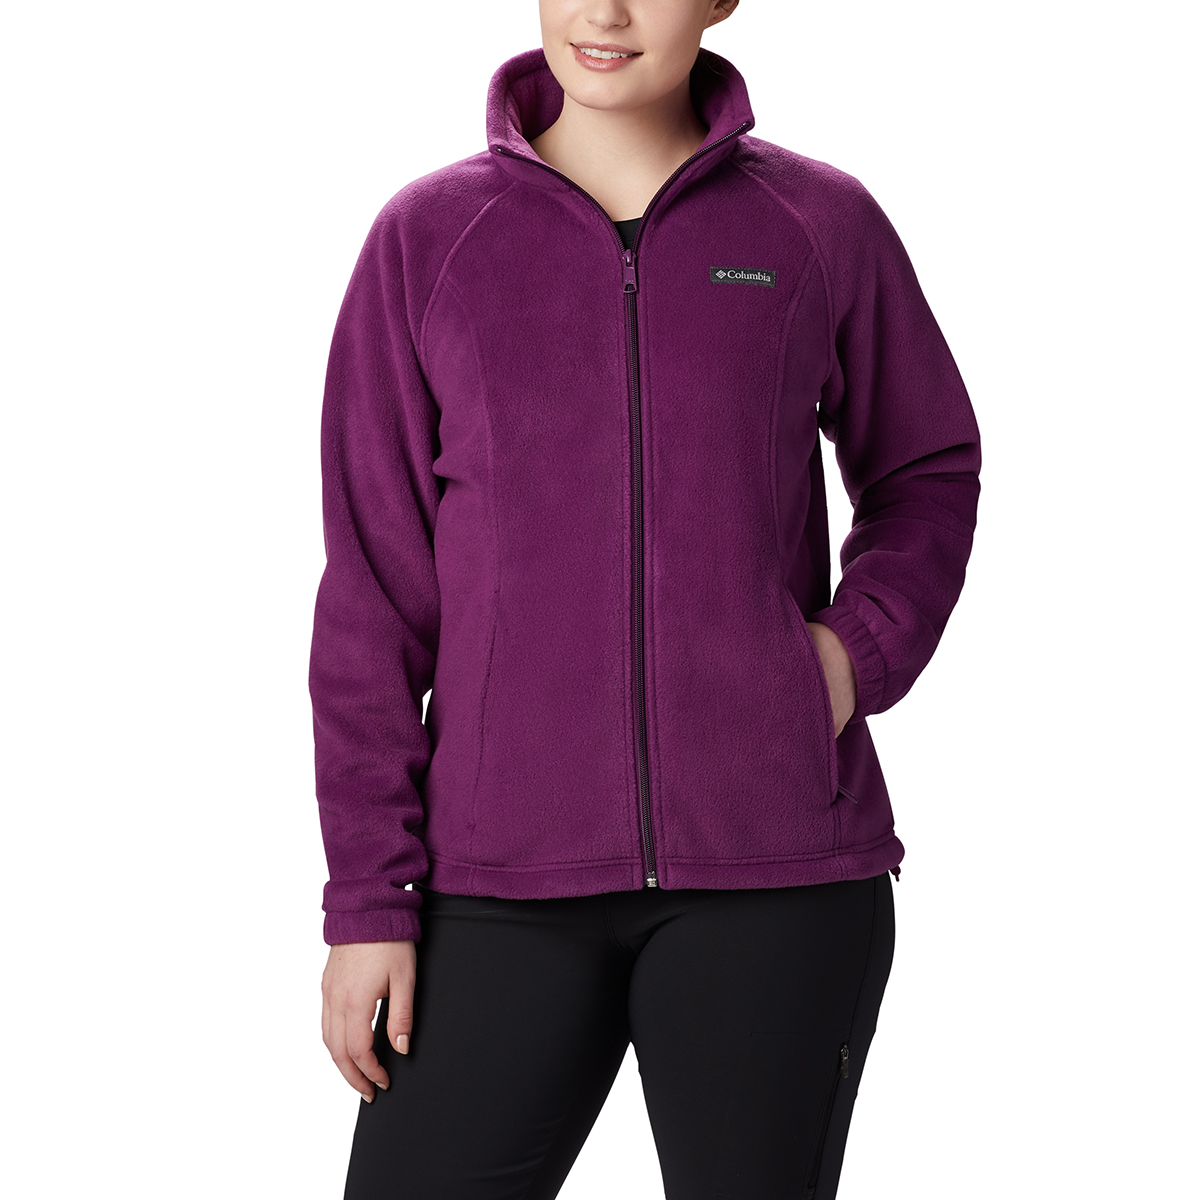 Columbia Women's Benton Springs Fleece Jacket - Purple, L